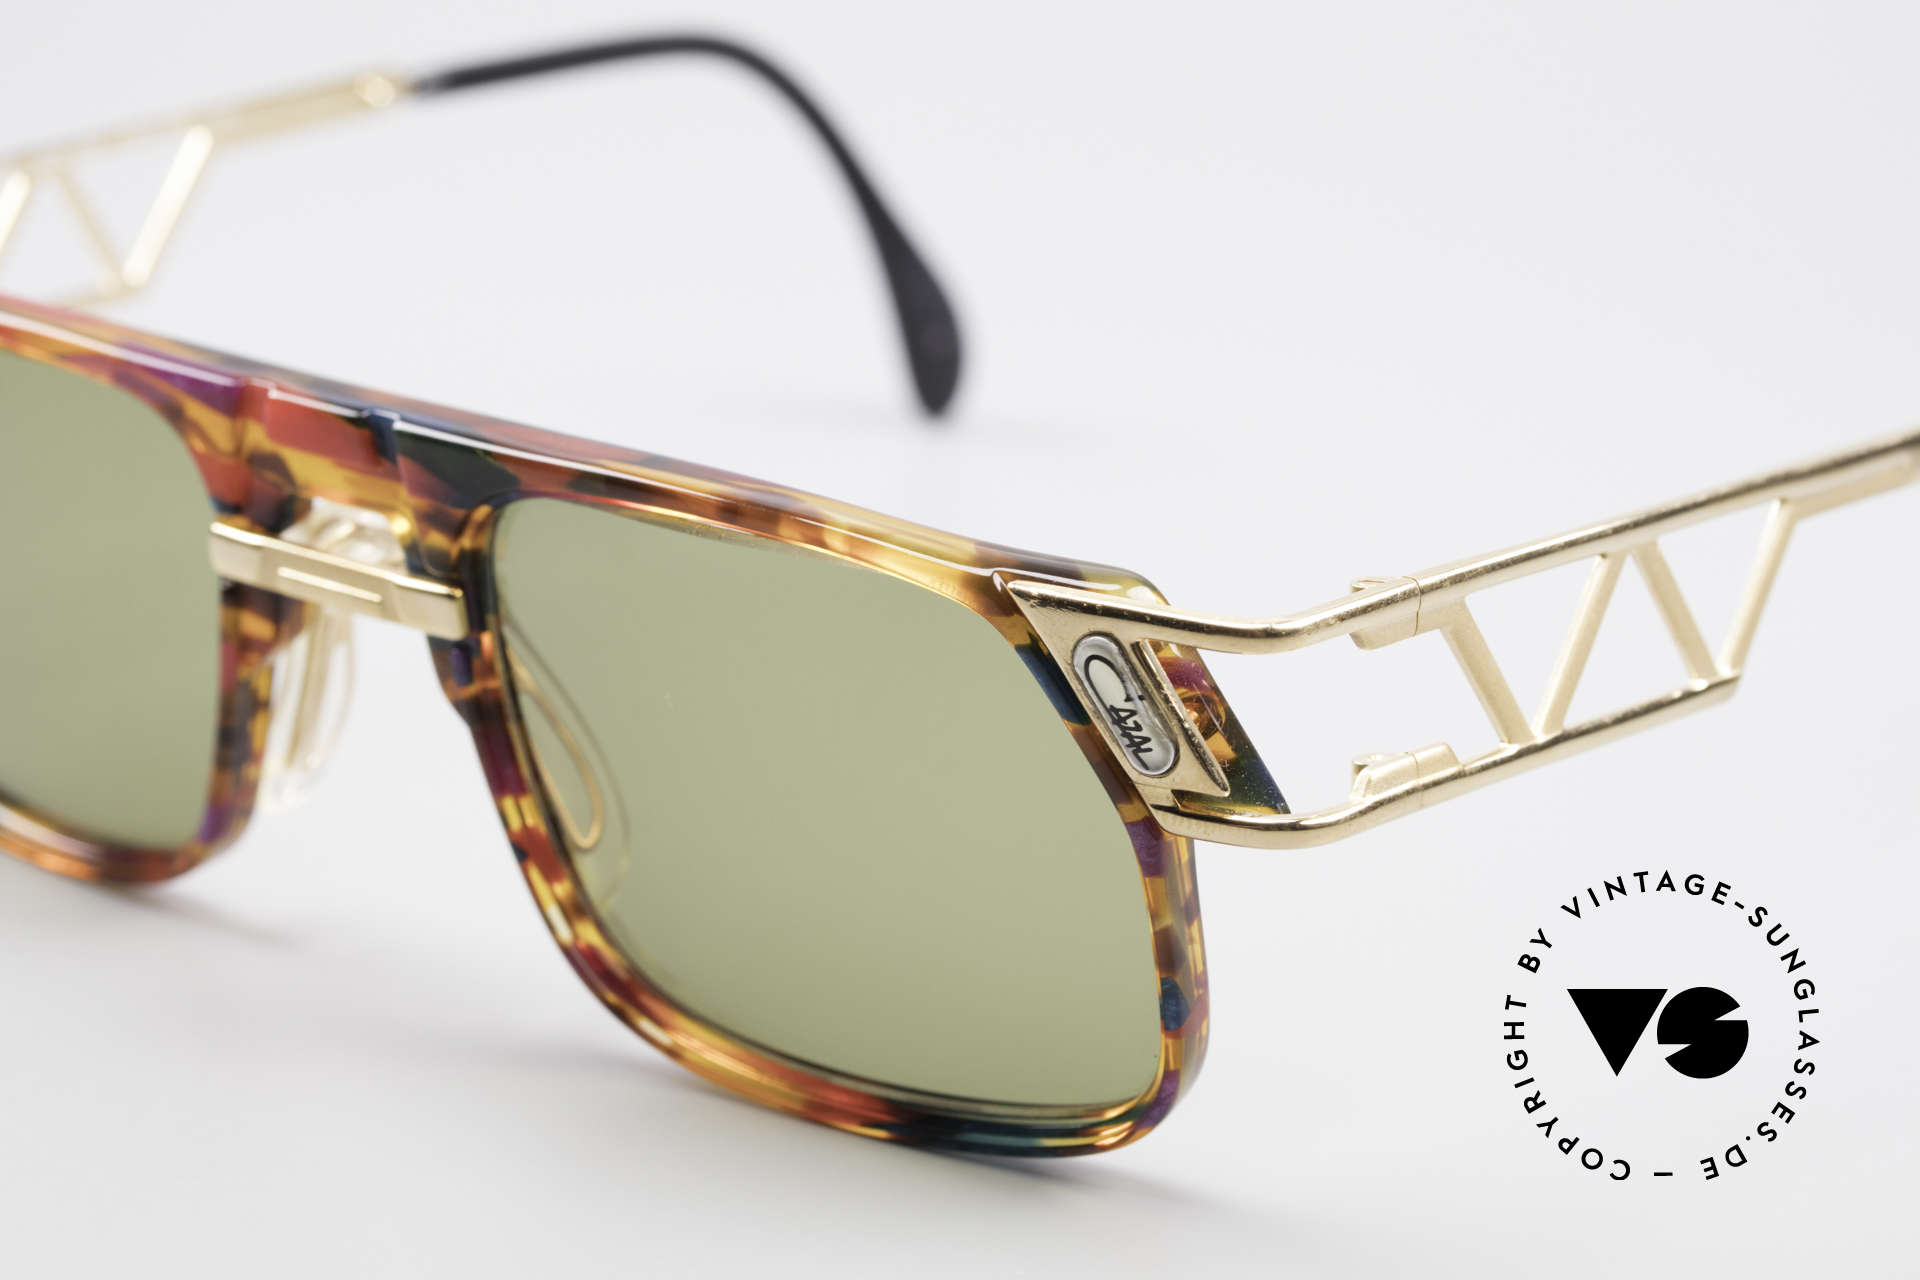 Cazal 876 90's Designer Vintage Shades, orig. Cazal lenses with 'UV Protection' mark; true vintage, Made for Men and Women